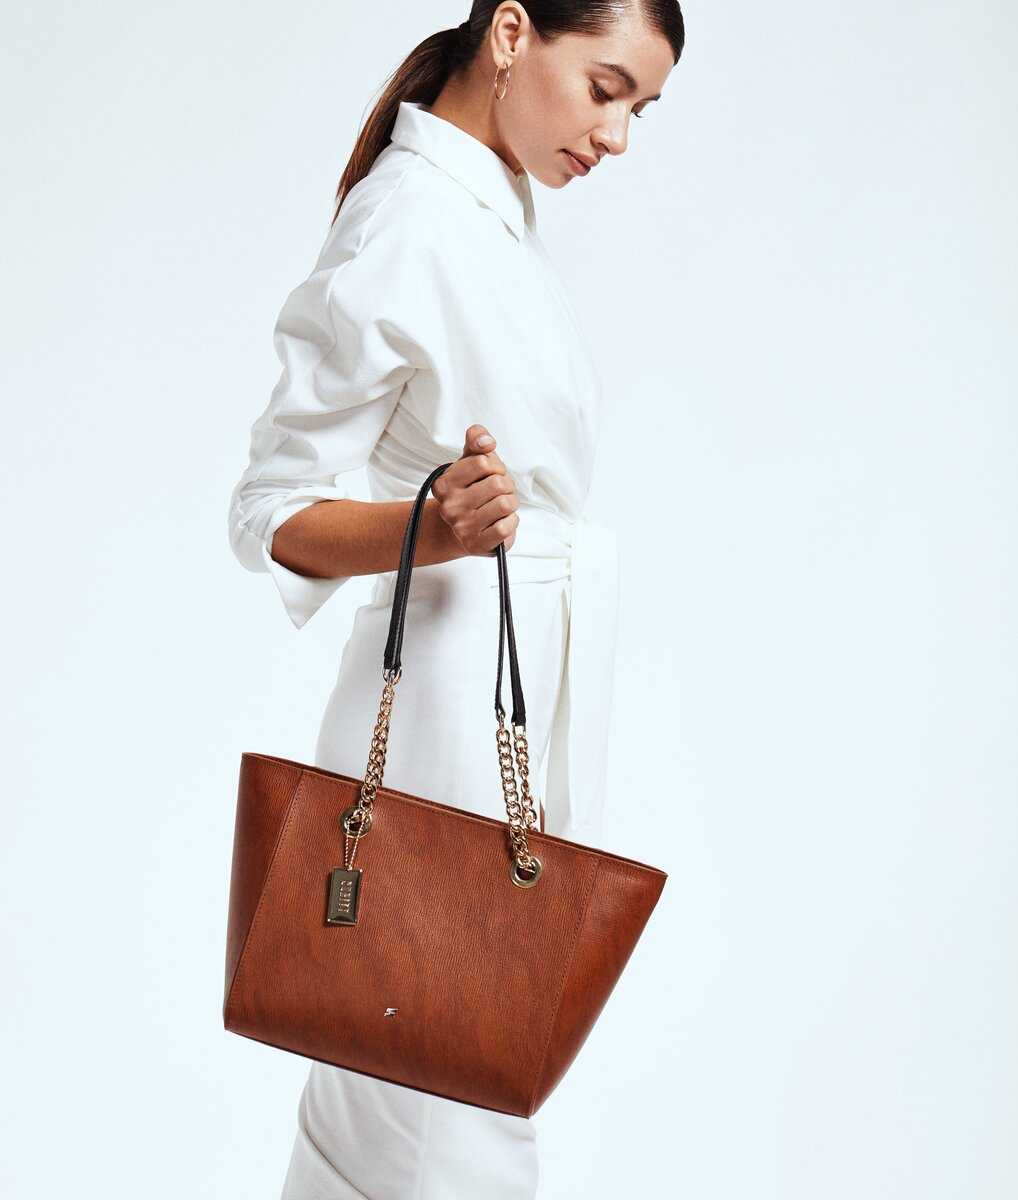 woman with brown leather shopper bag- Corteccia